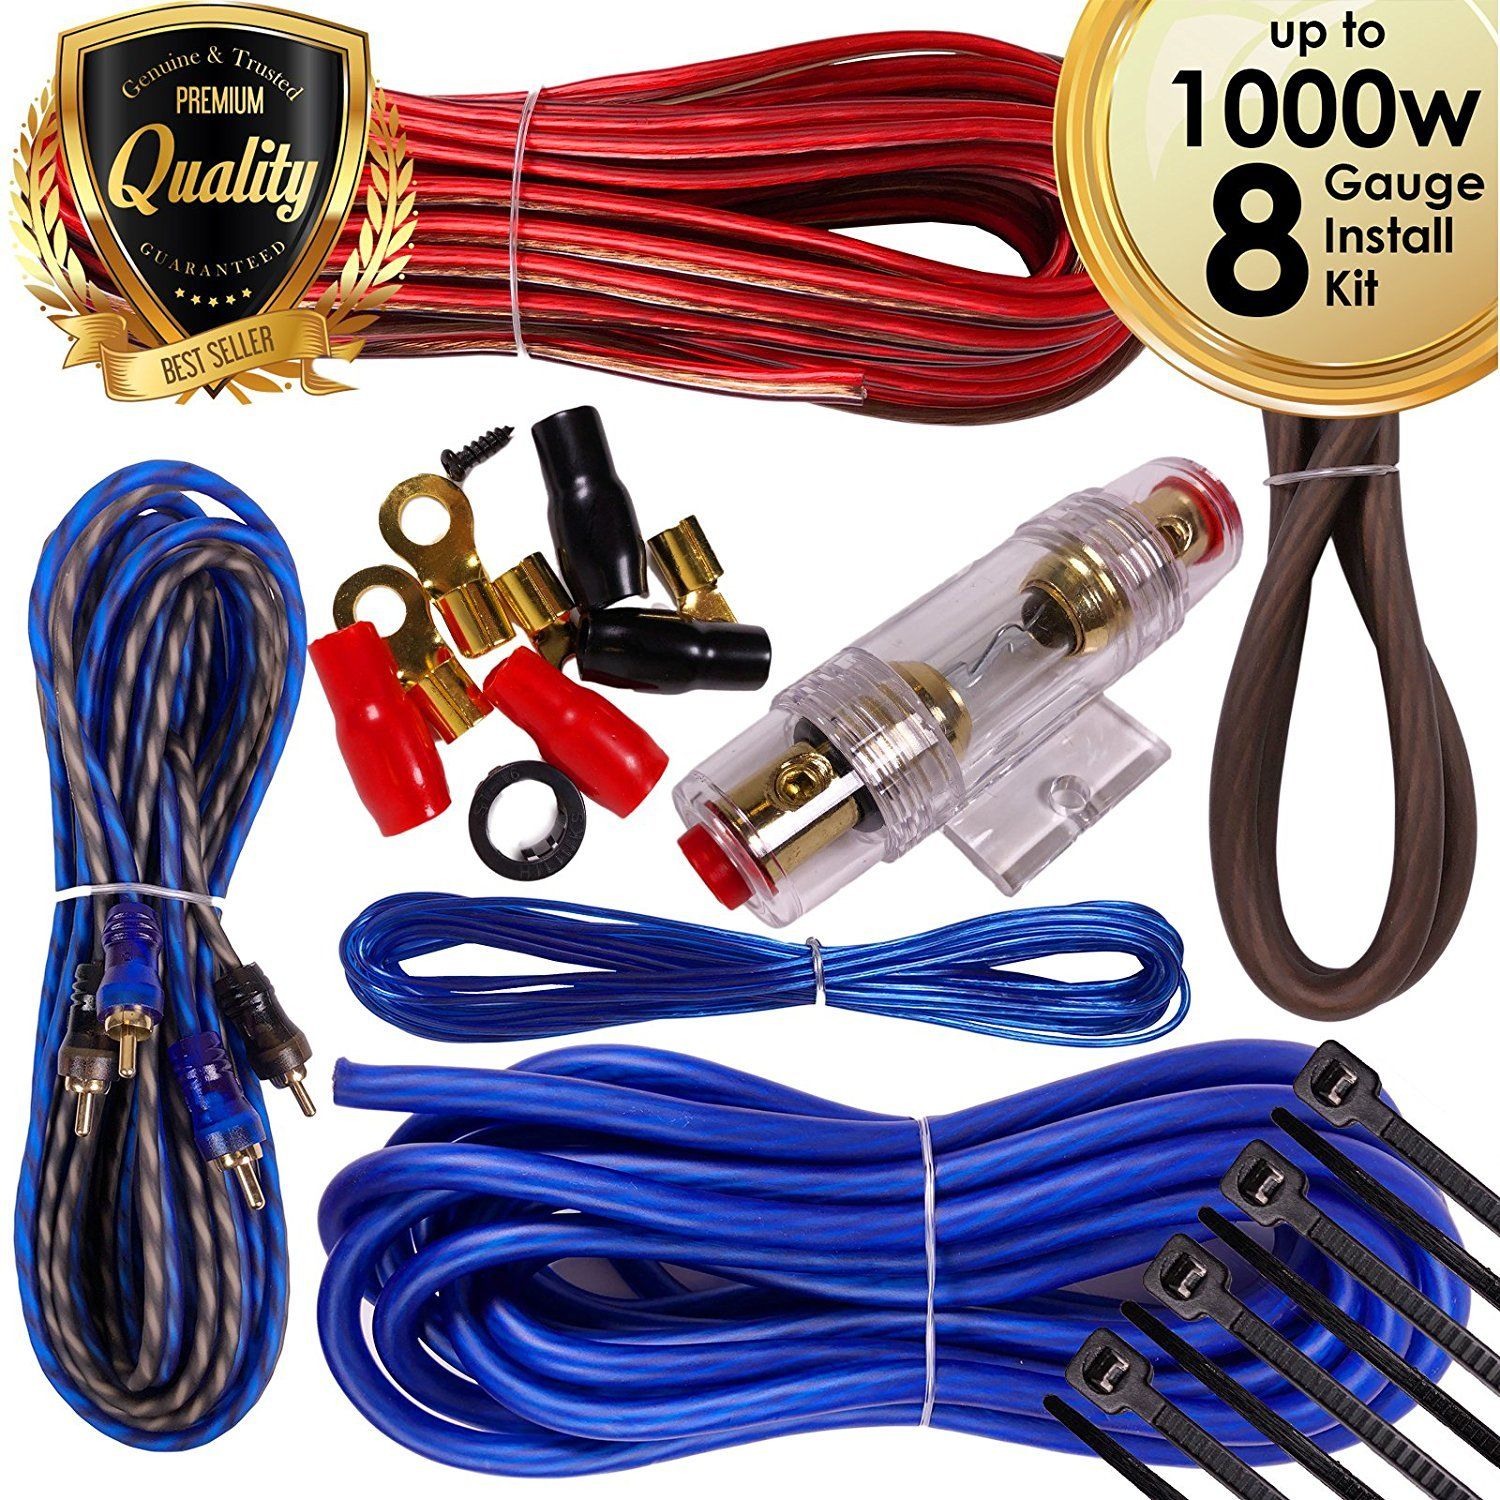 small resolution of mobile audio wiring kits wiring library diagram a4 panasonic car stereo wiring diagram amplifier wiring kits